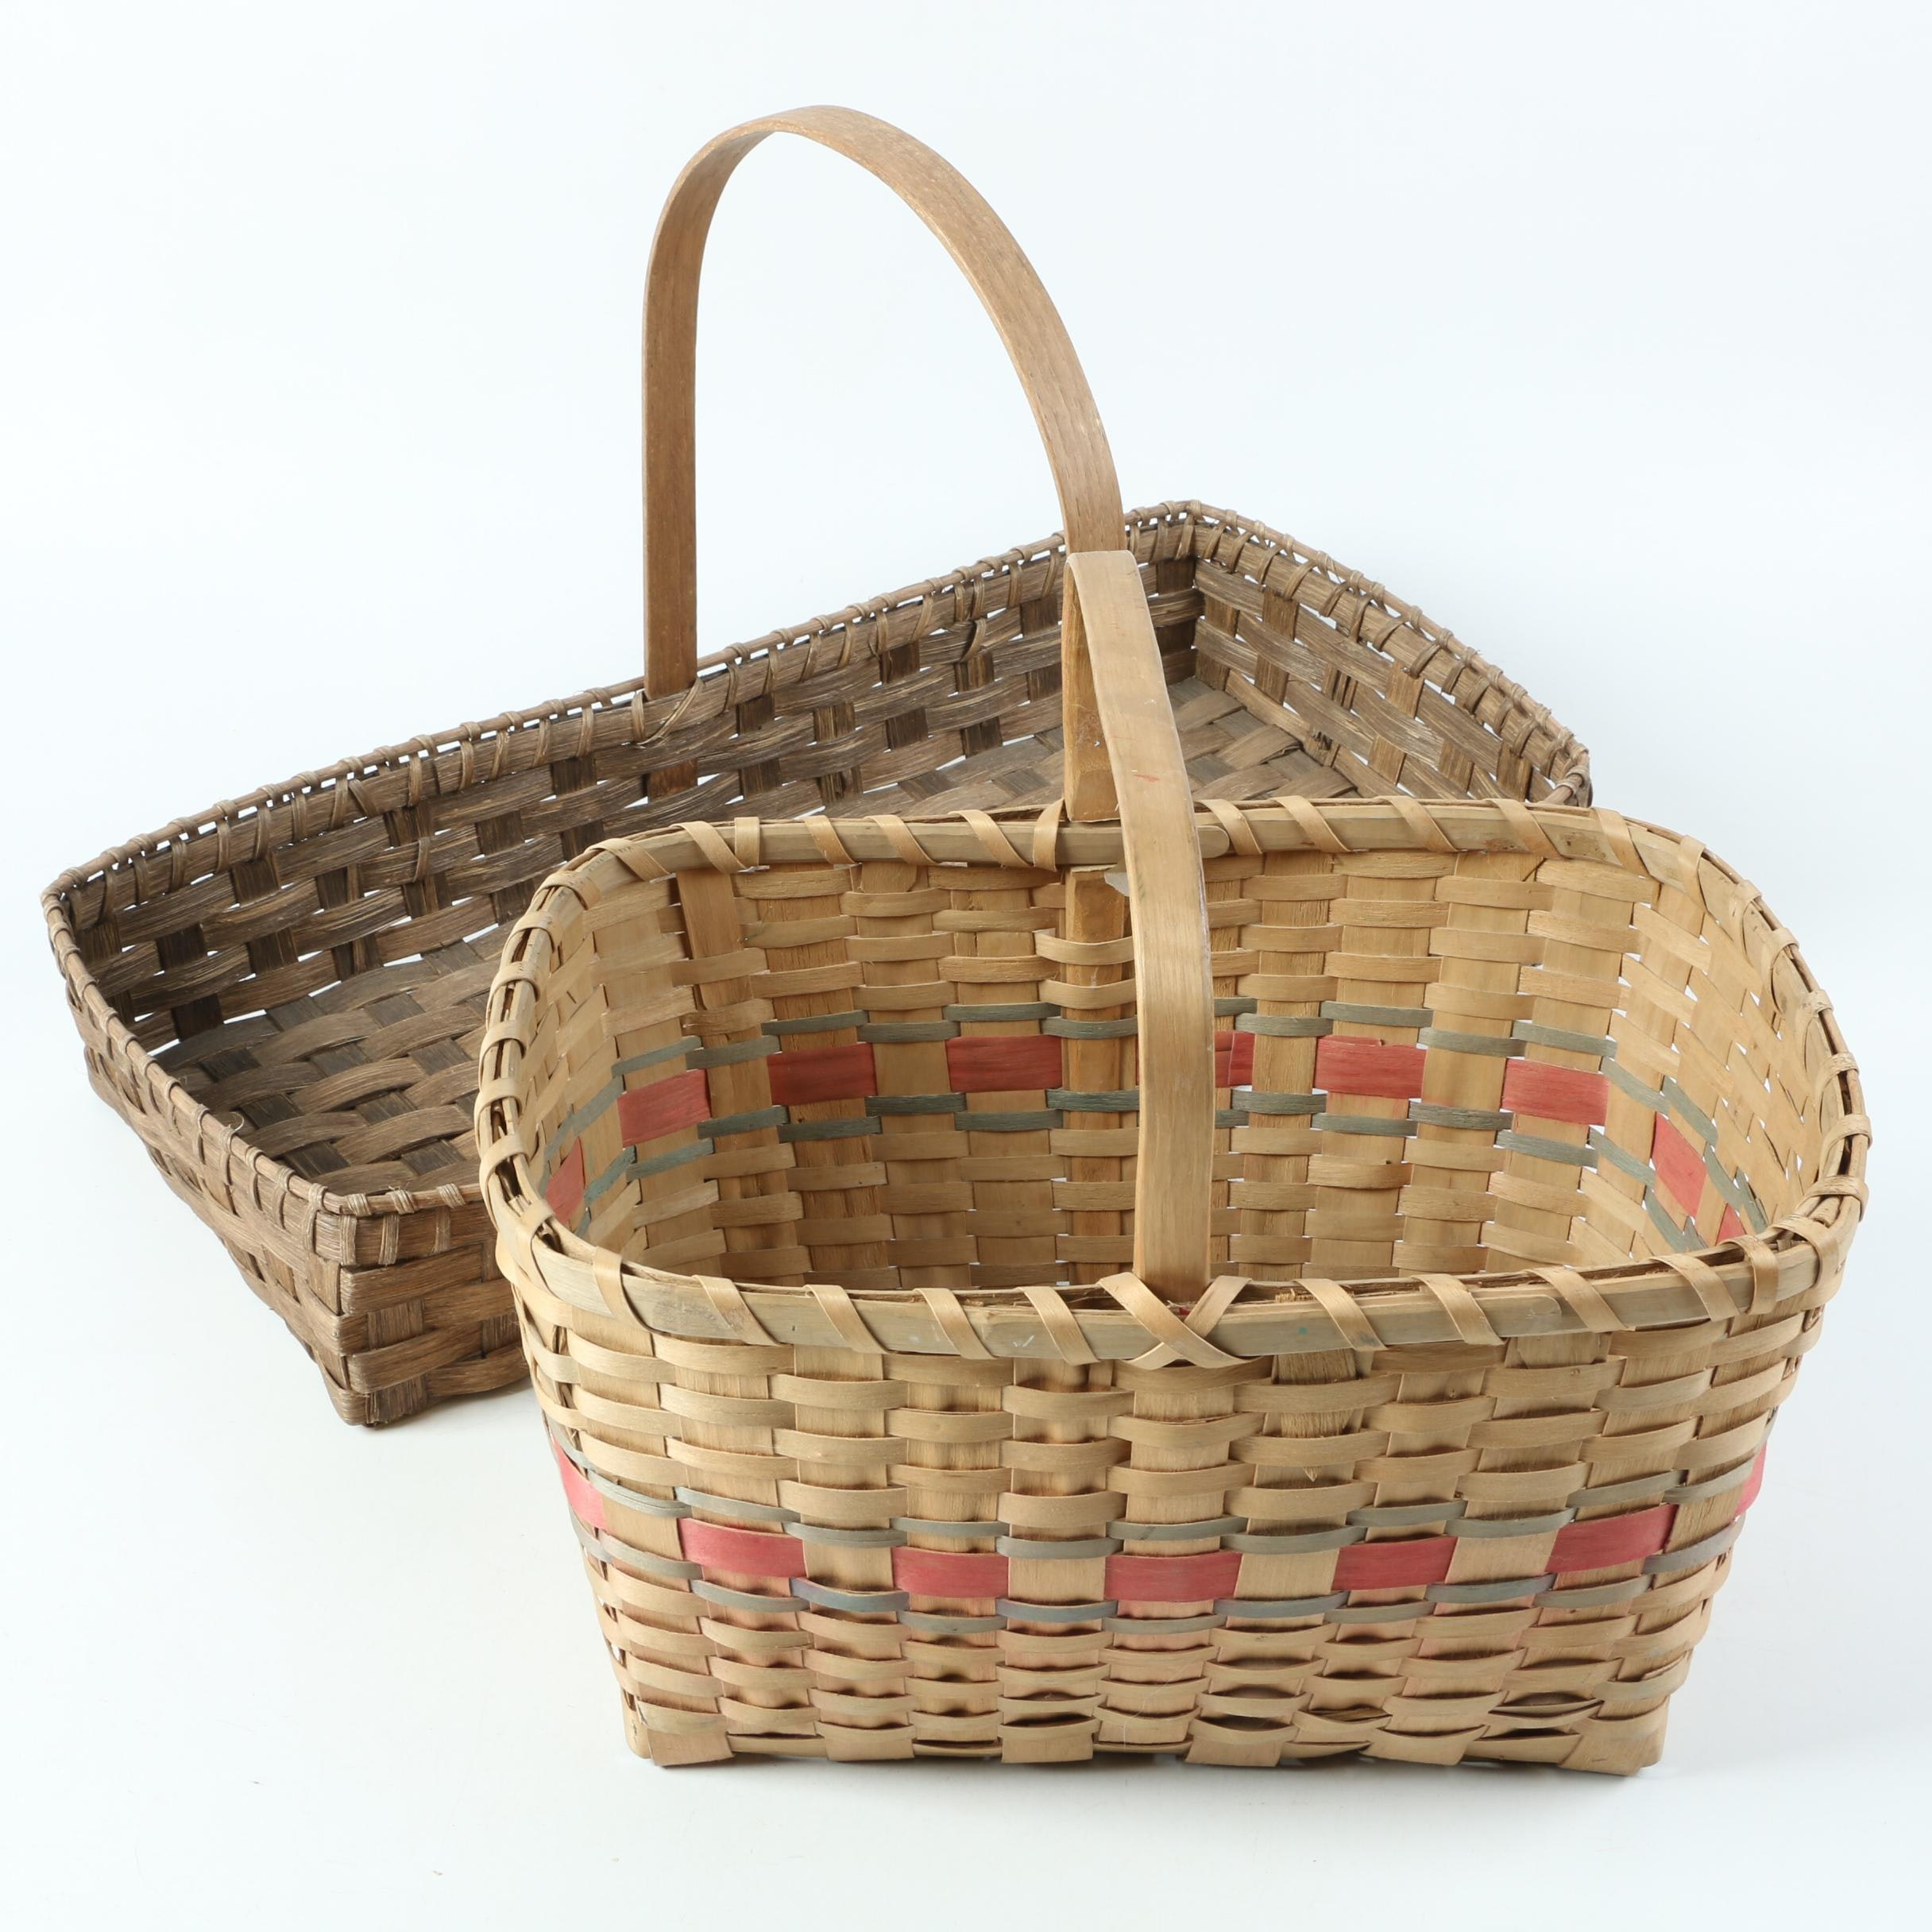 Vintage Hand Woven Splint Gathering Baskets Featuring Hala